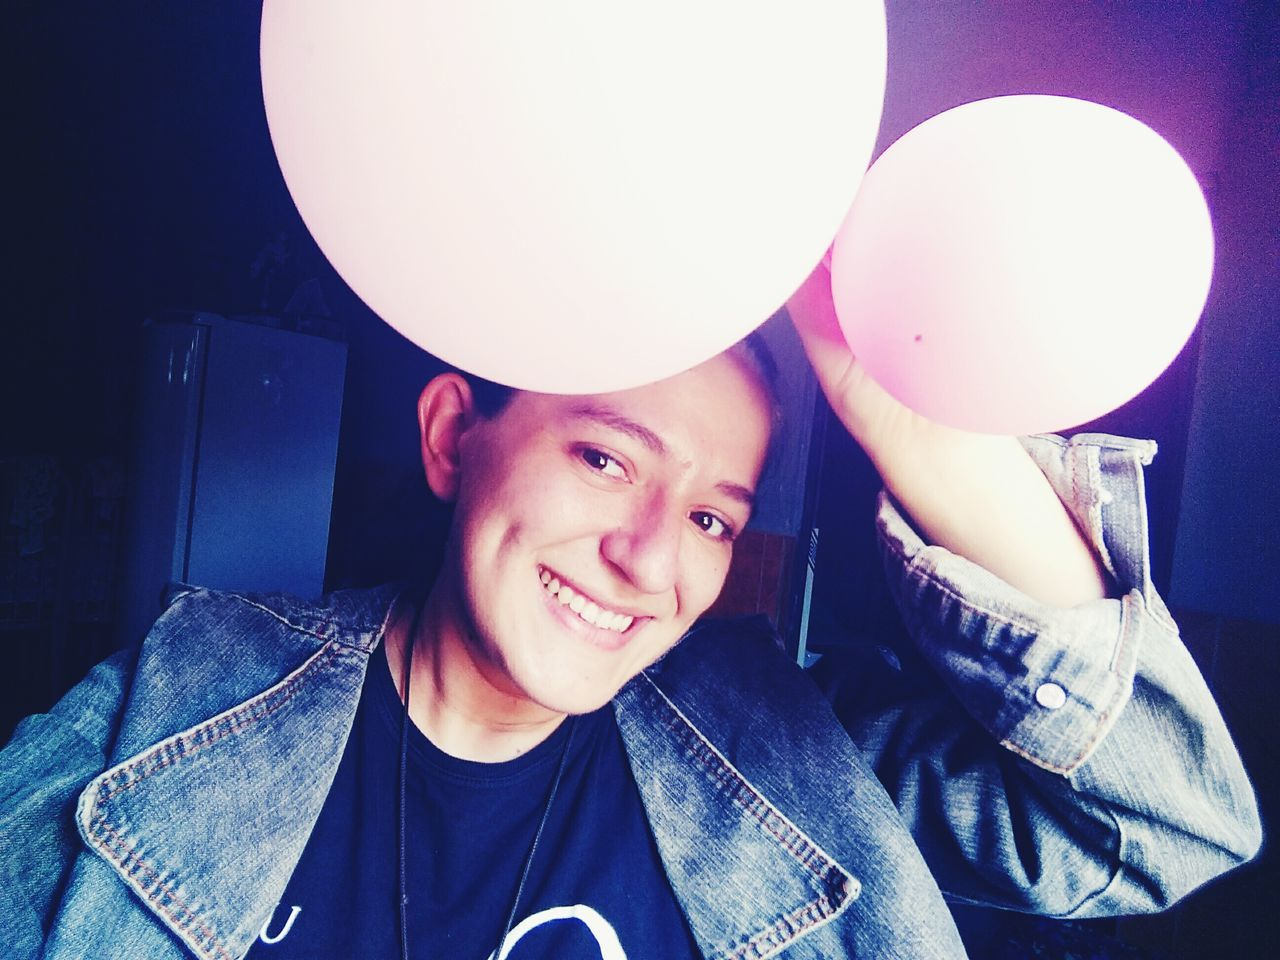 casual clothing, one person, real people, looking at camera, front view, portrait, head and shoulders, young adult, leisure activity, balloon, smiling, happiness, young men, boys, lifestyles, childhood, indoors, night, close-up